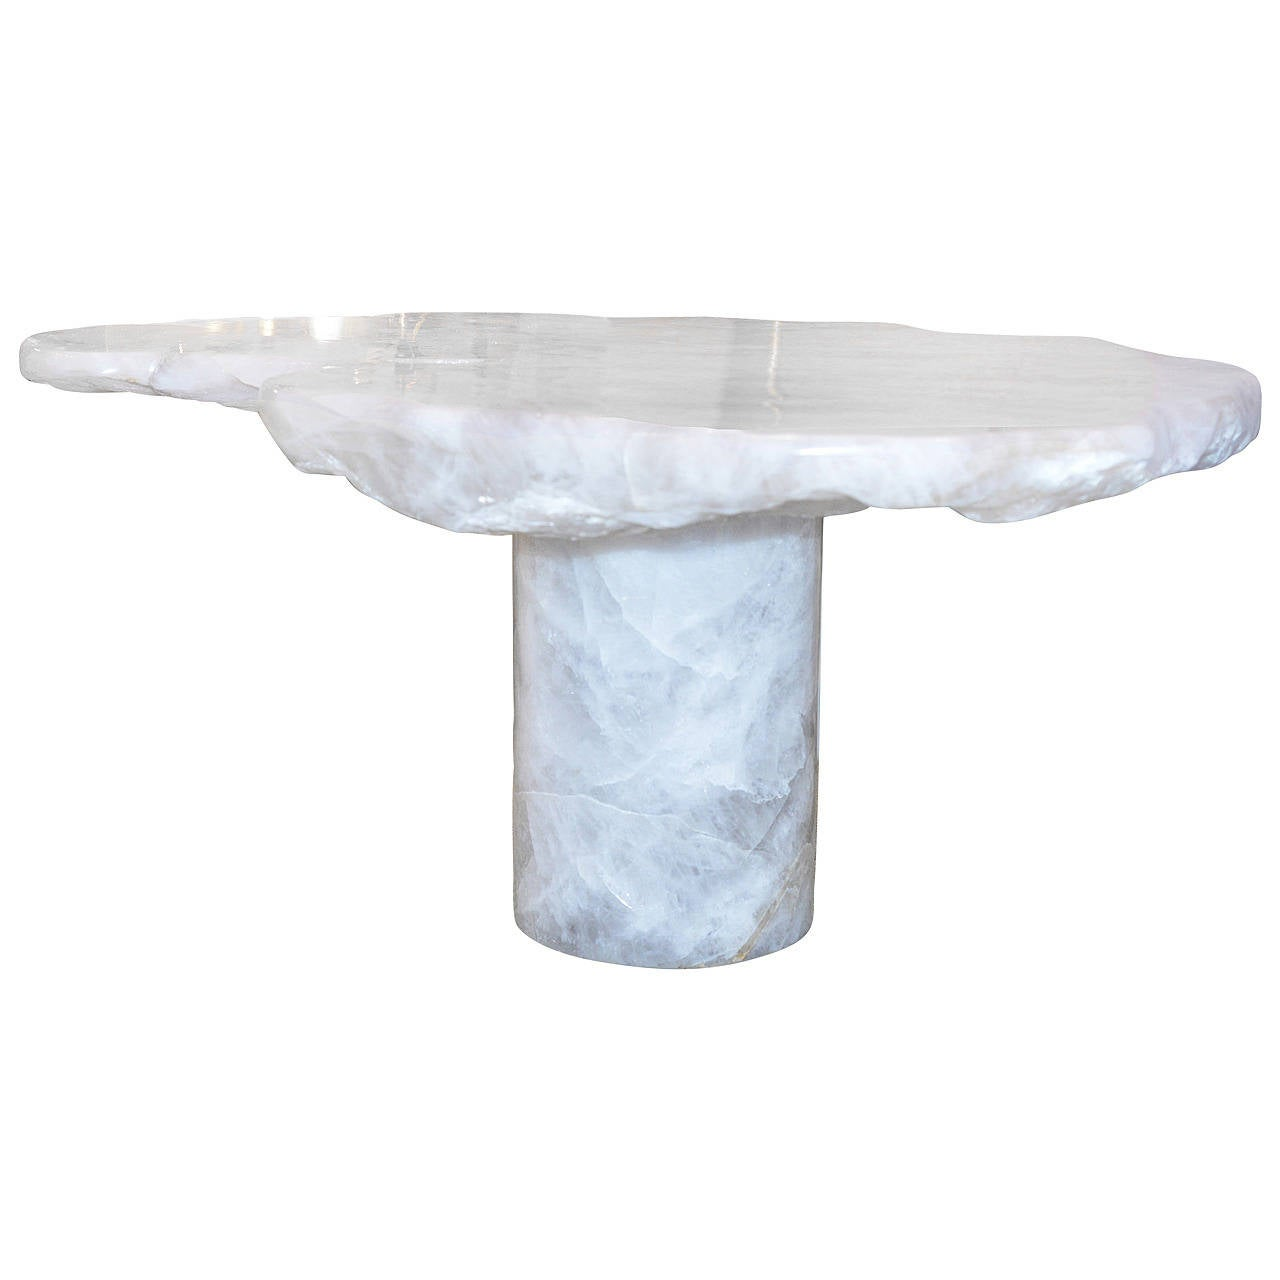 cloud form rock crystal quartz low table by adam fuks for. Black Bedroom Furniture Sets. Home Design Ideas